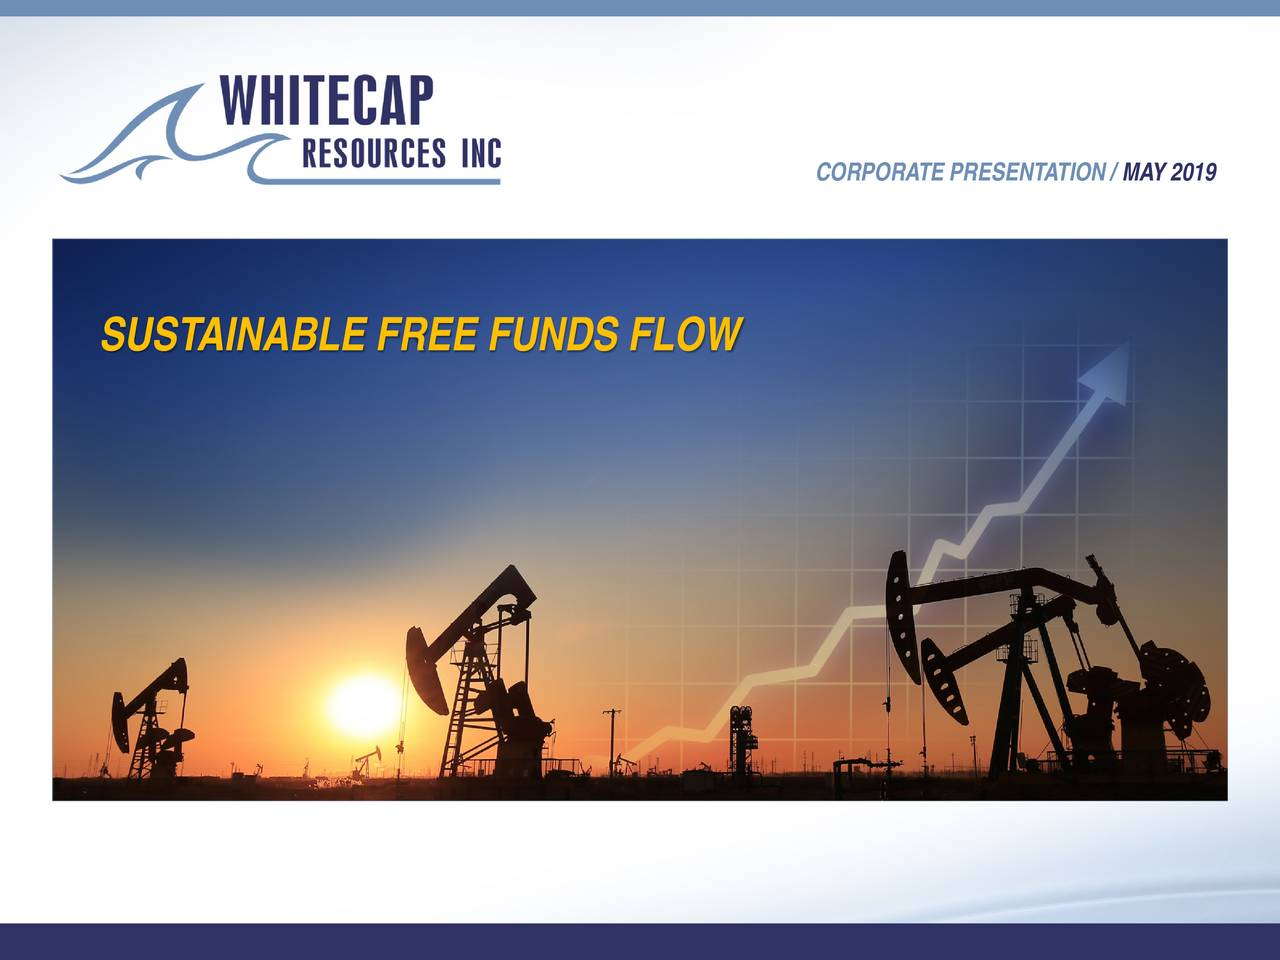 SUSTAINABLE FREE FUNDS FLOW